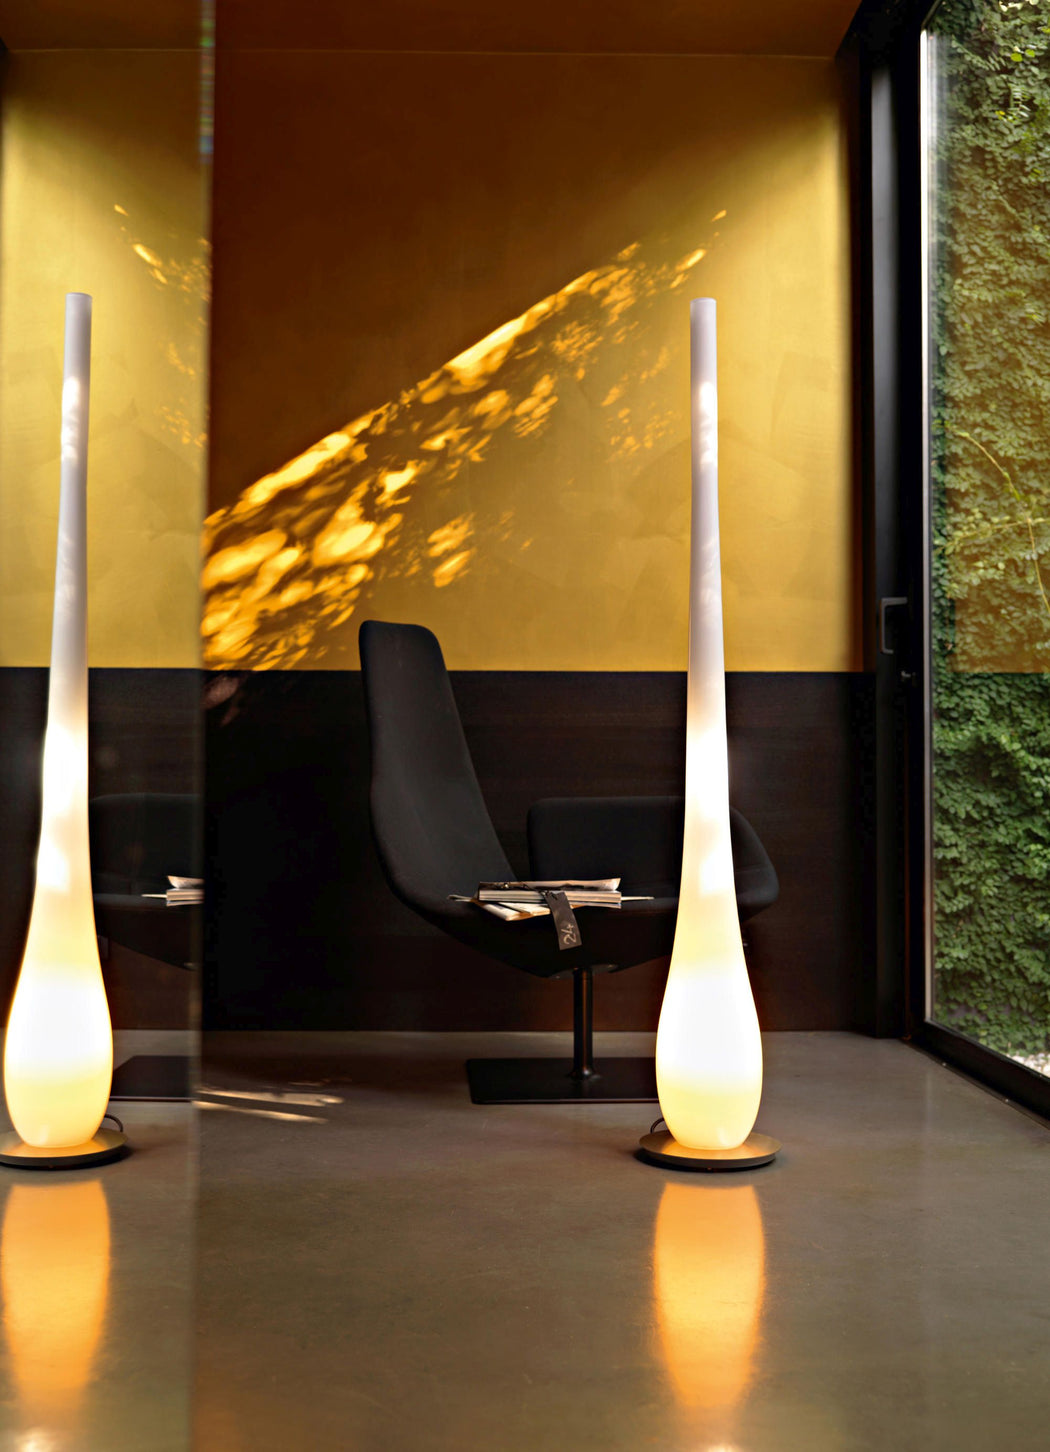 Tall modern white droplet-shaped Murano glass floor lamp on a steel frame